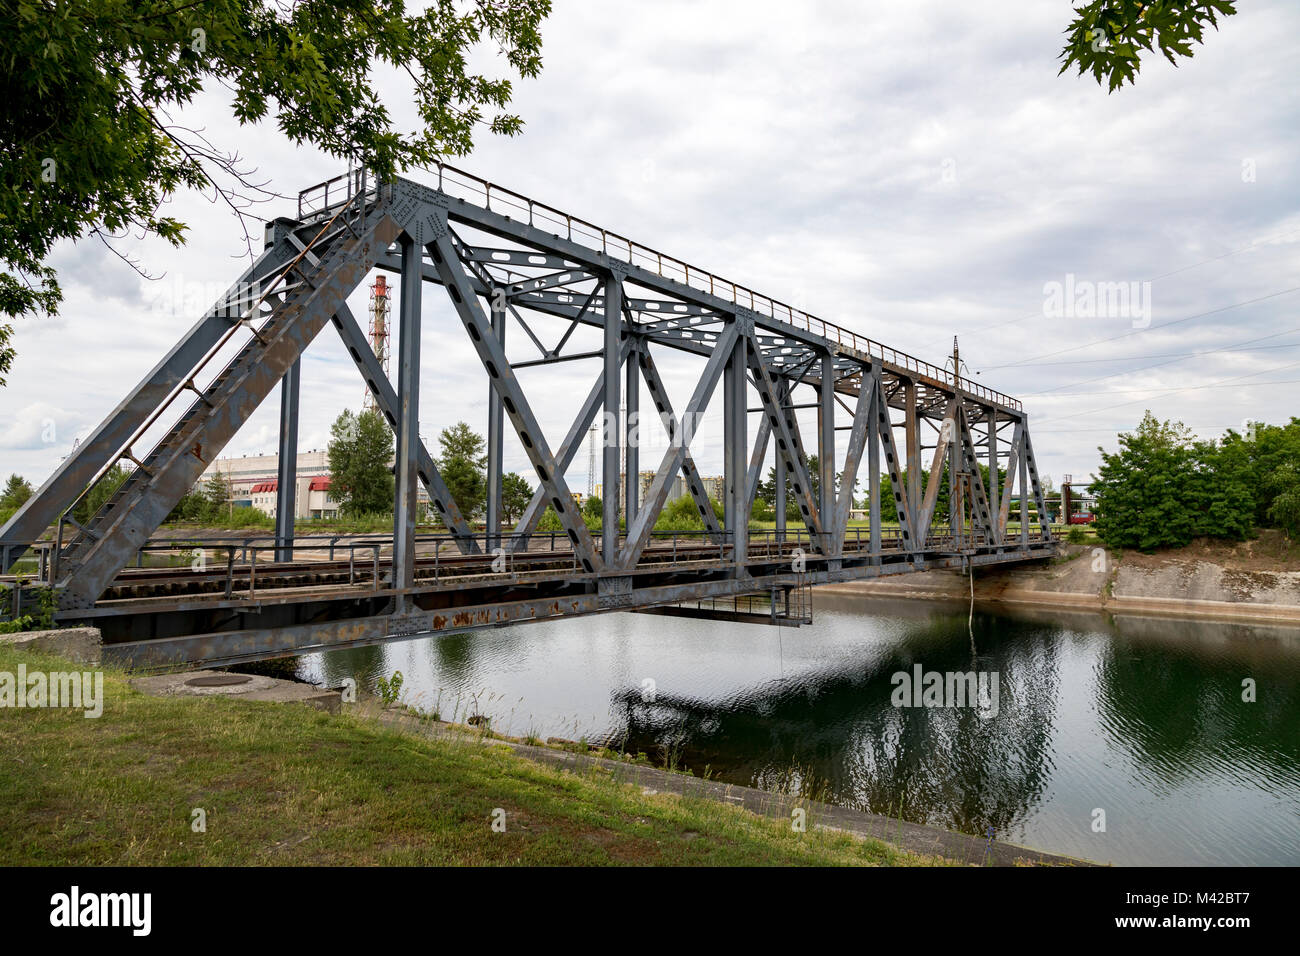 The railway bridge at the Chernobyl nuclear power plant - Stock Image